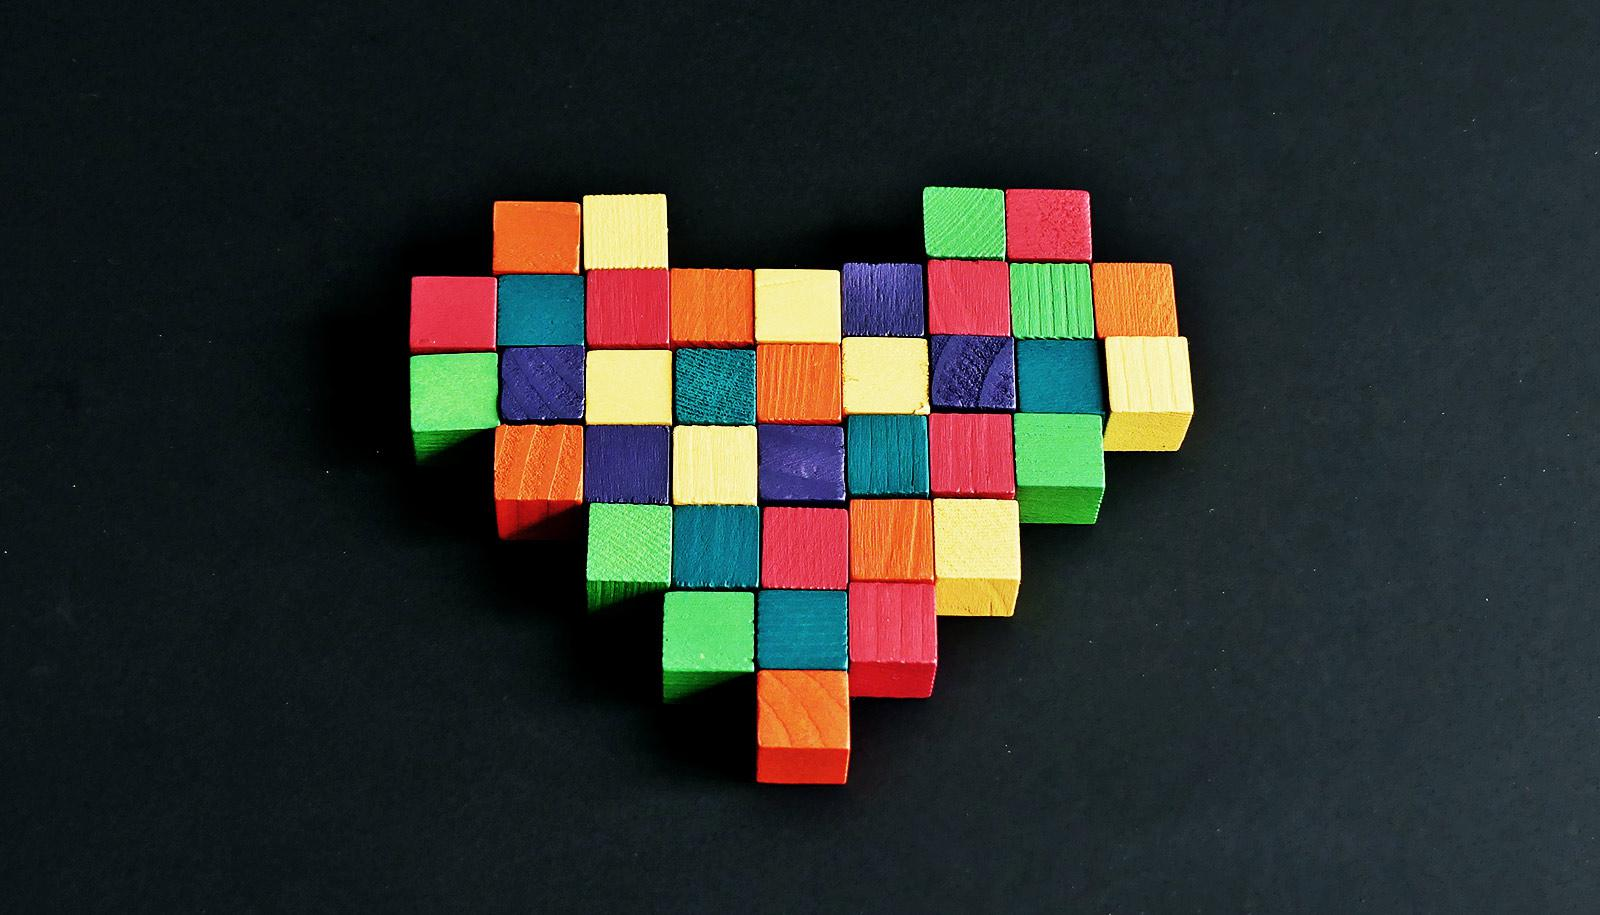 heart made of blocks (heart muscle concept)